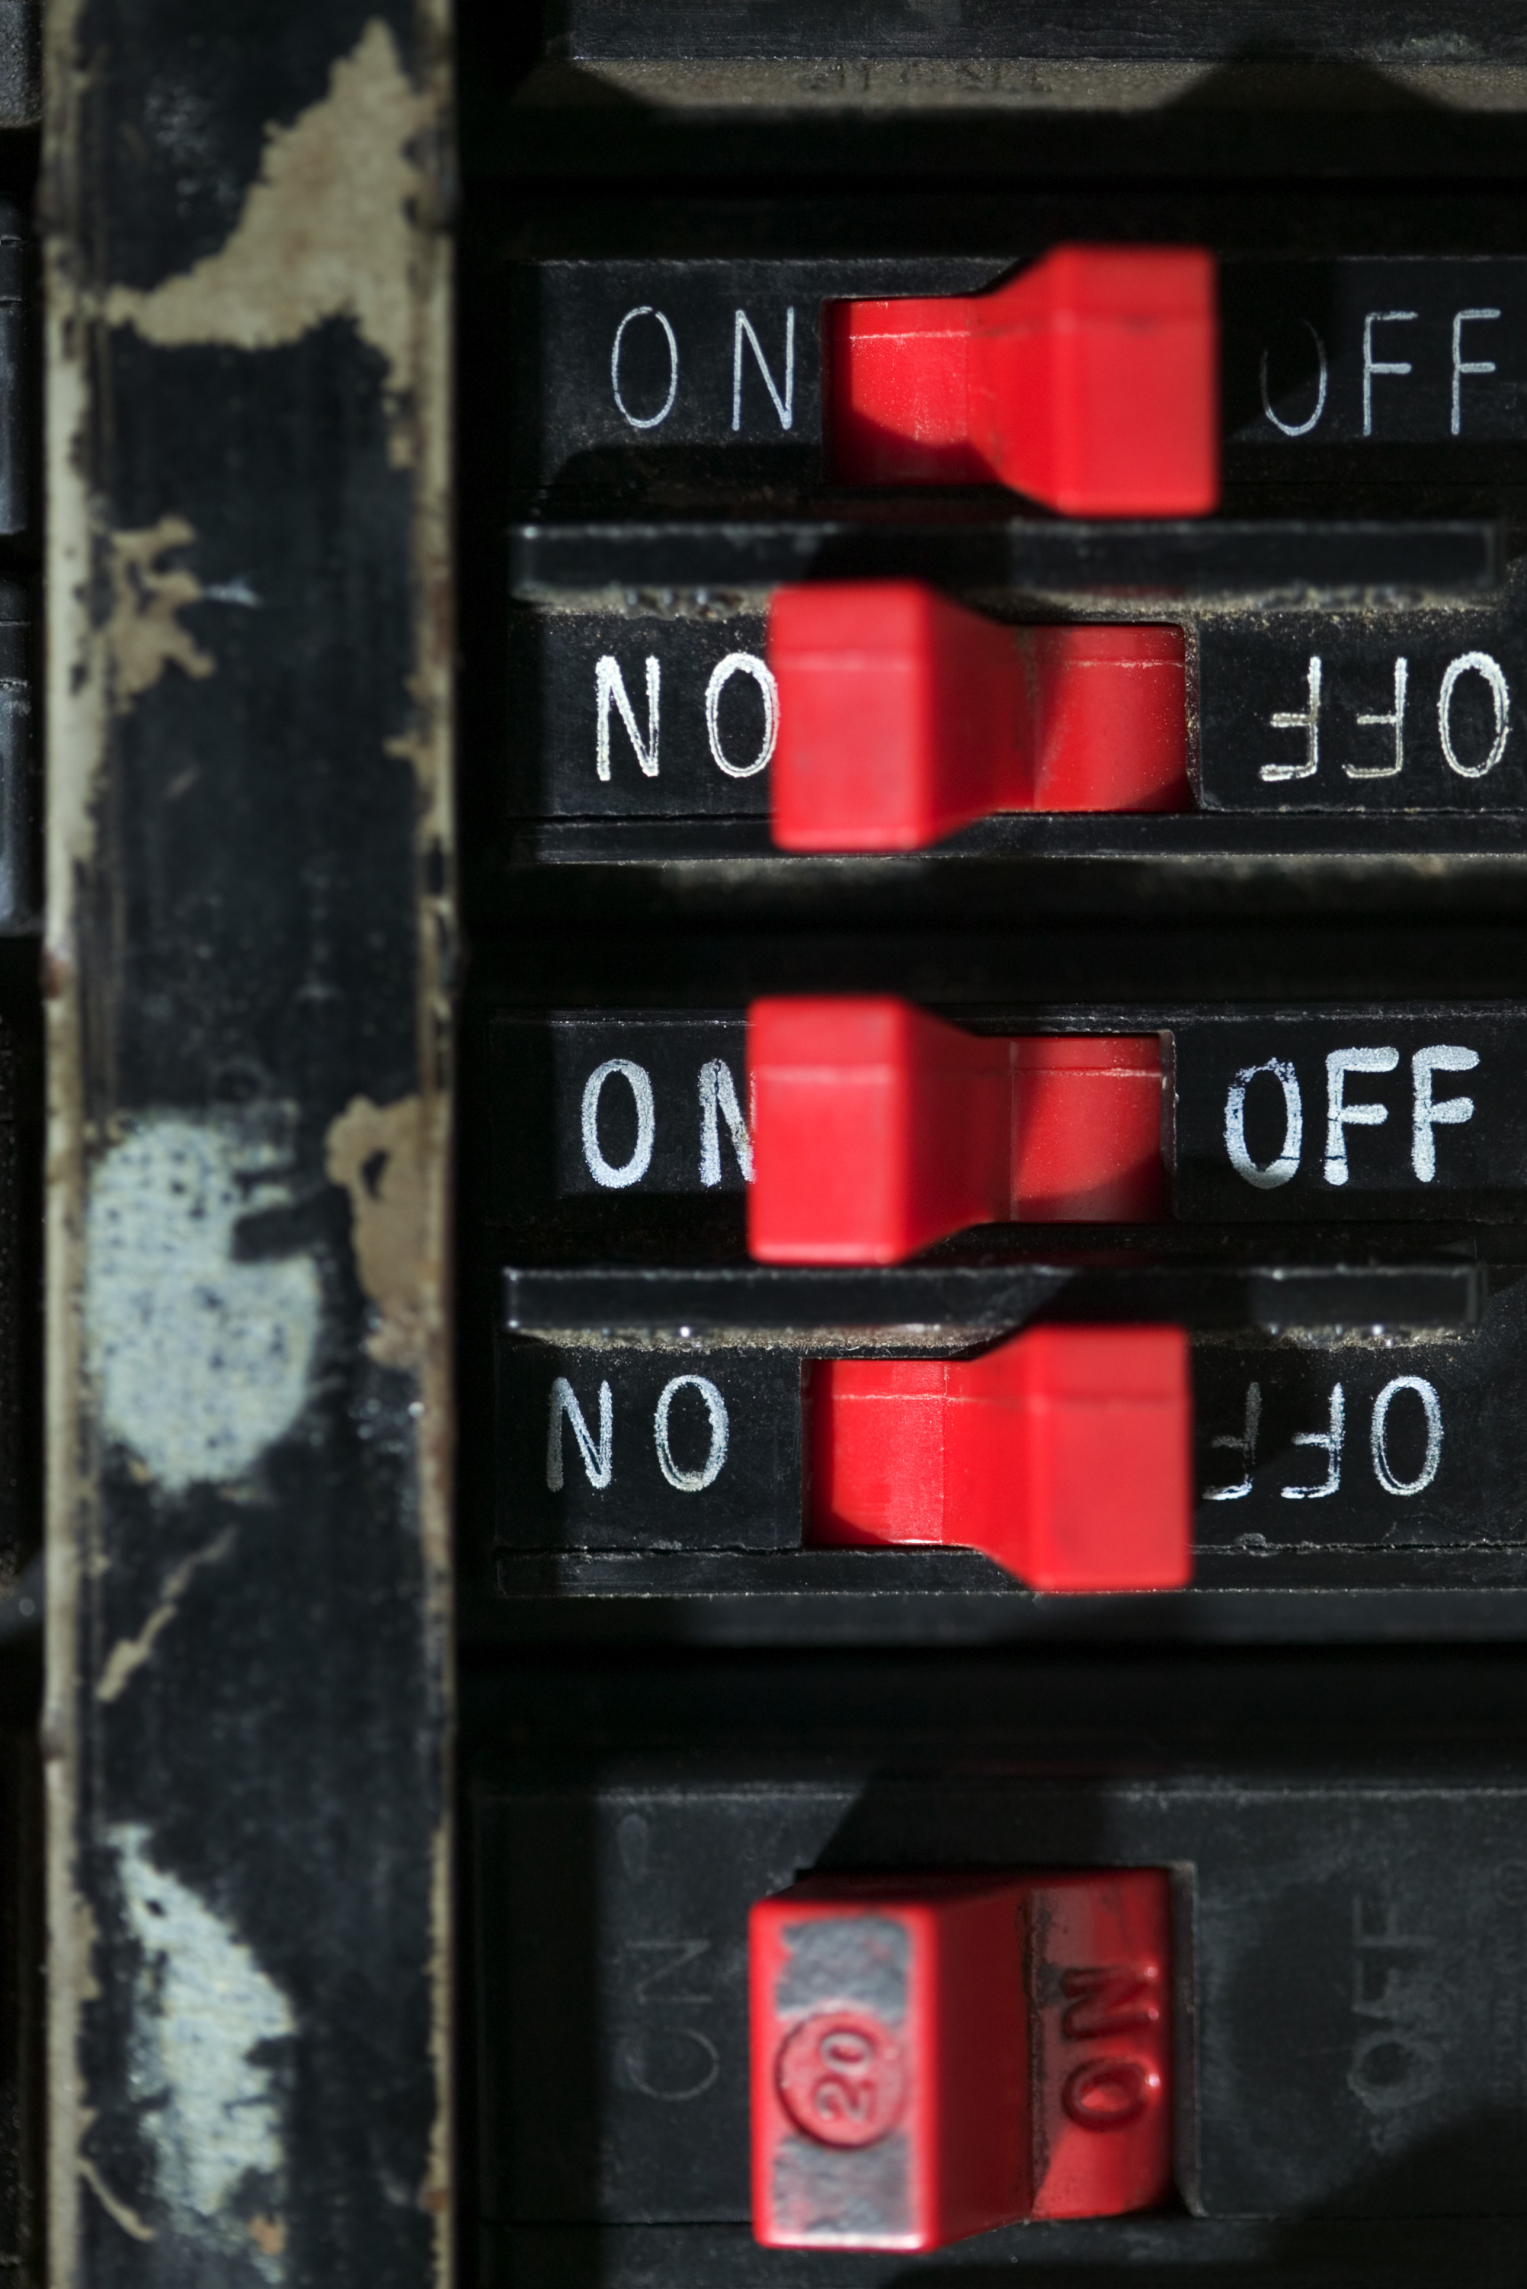 Independent Vs Common Trip Circuit Breaker Ehow Types Video Different Of Breakers